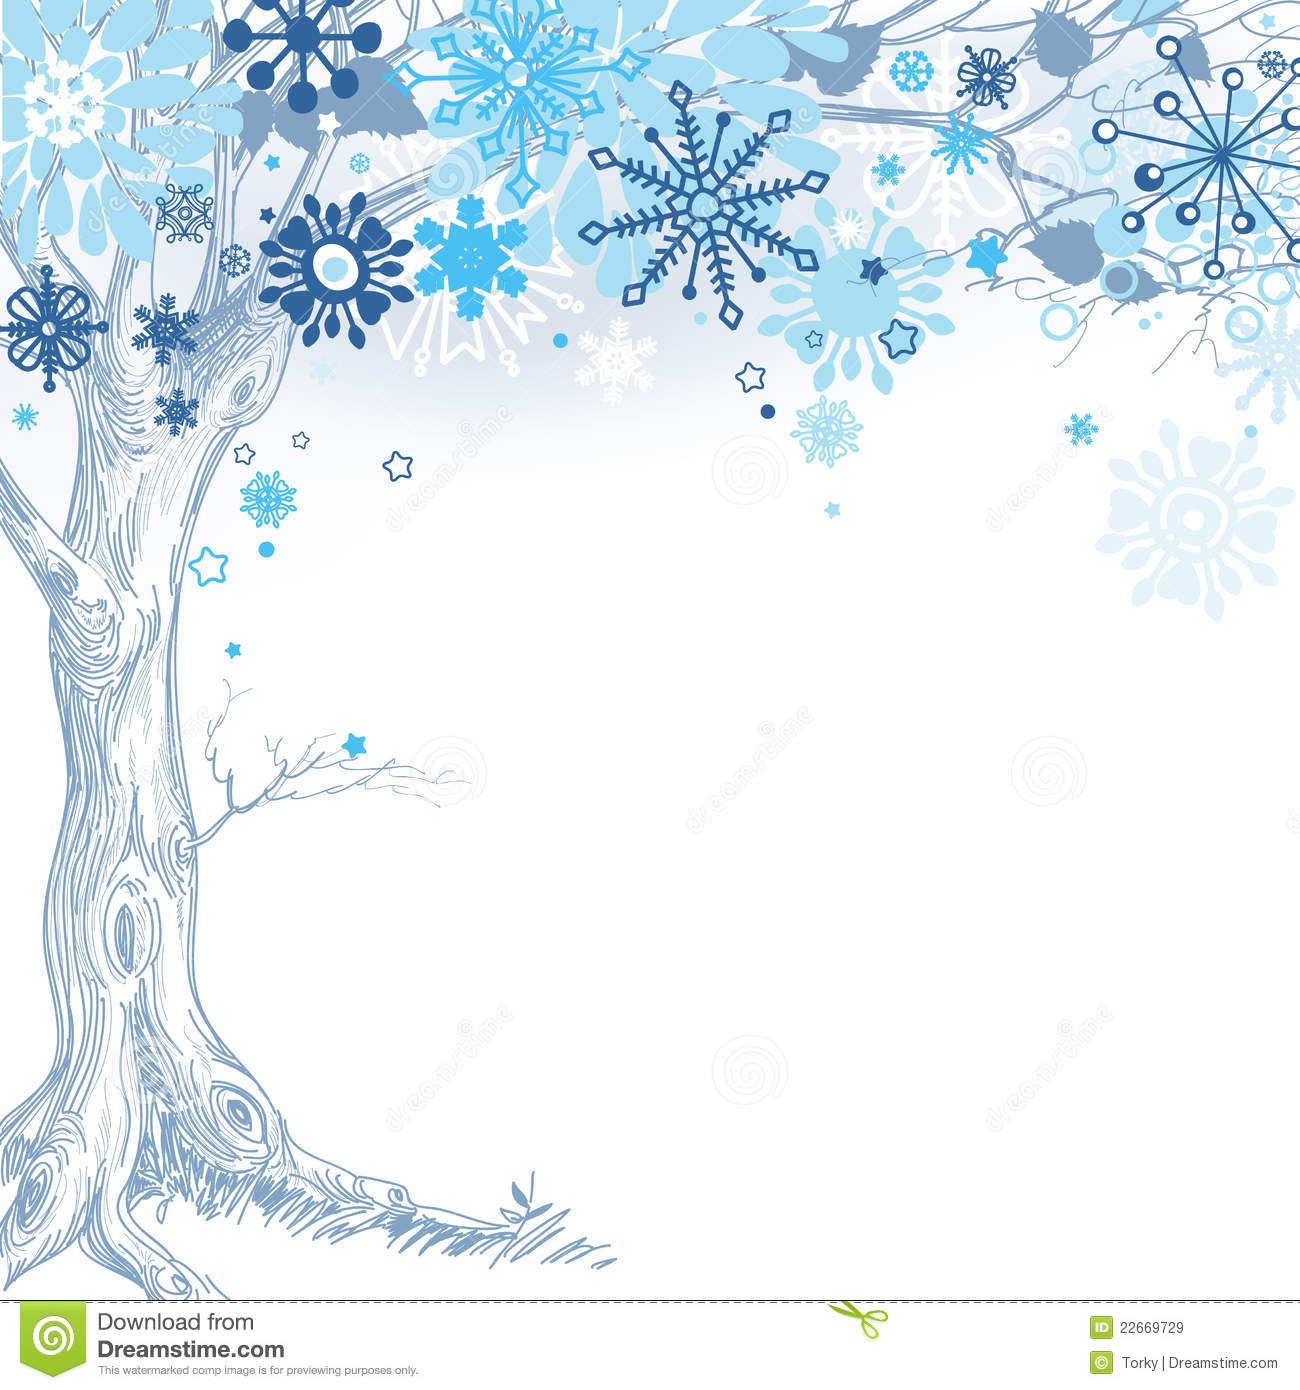 Winter tree with snowflakes over white background.